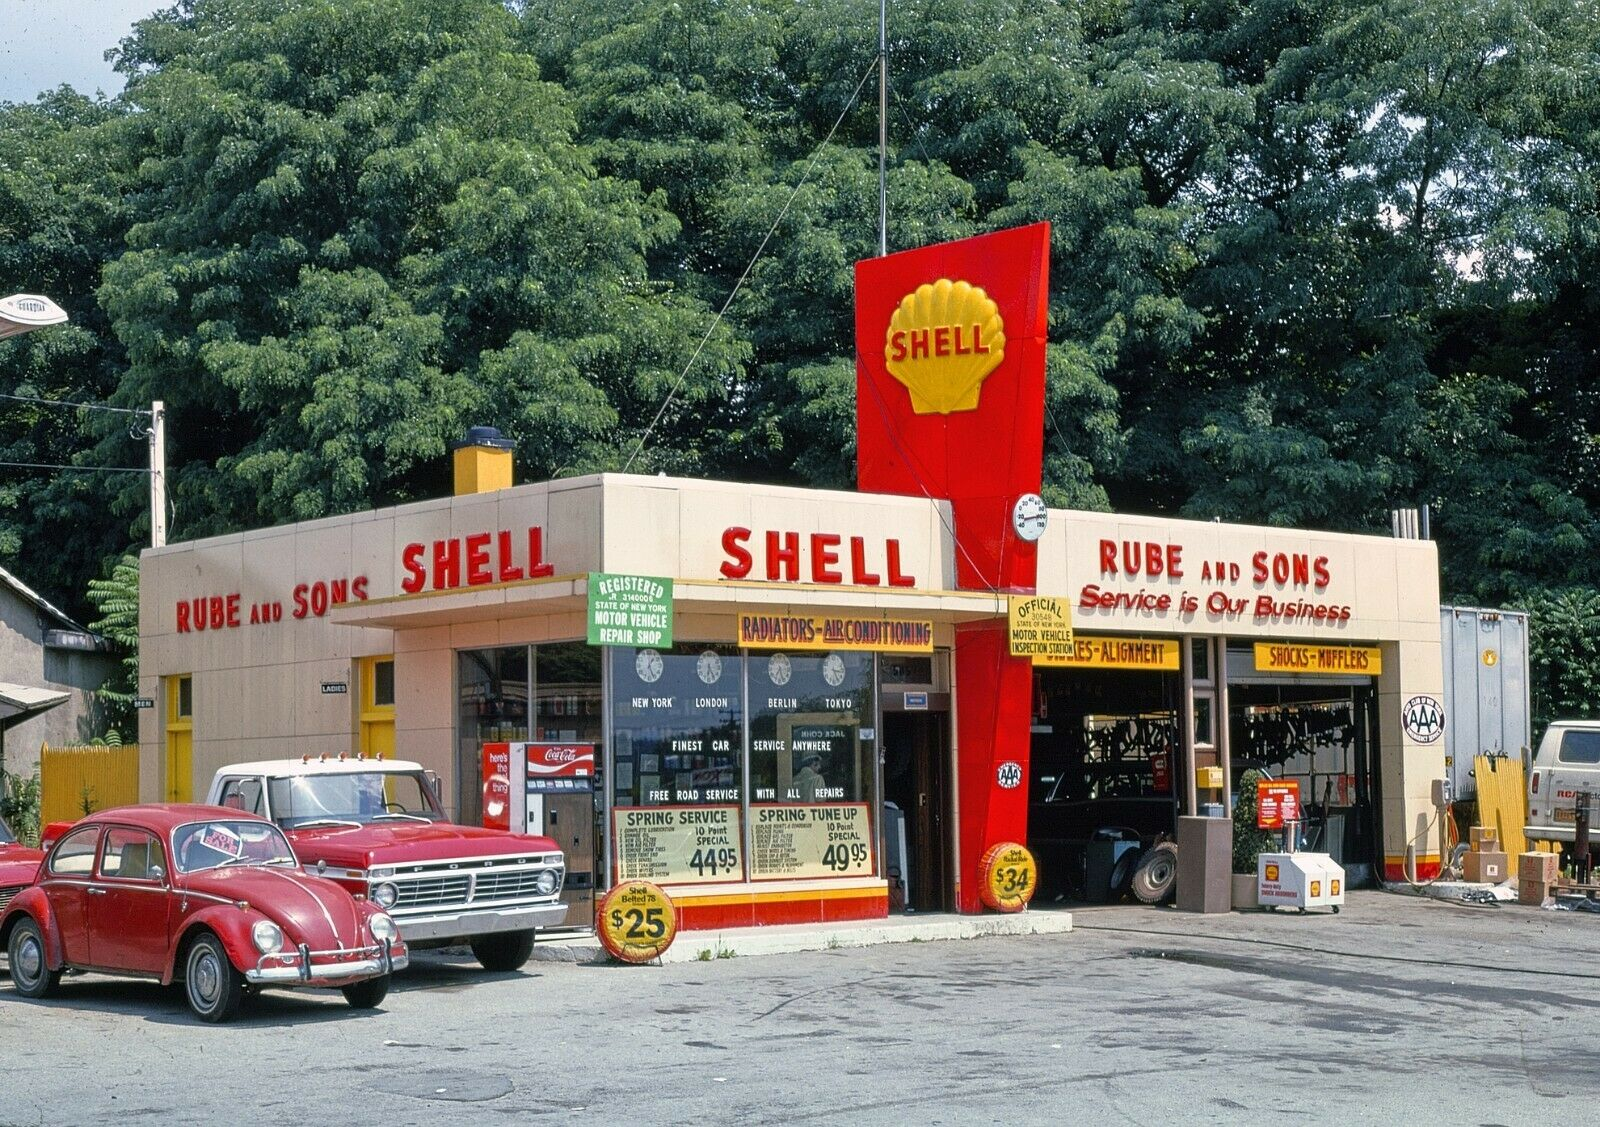 Image 1 - Rube & Sons Shell Gas Station Route 9 Kingston New York 5x7 Color B&W Photo